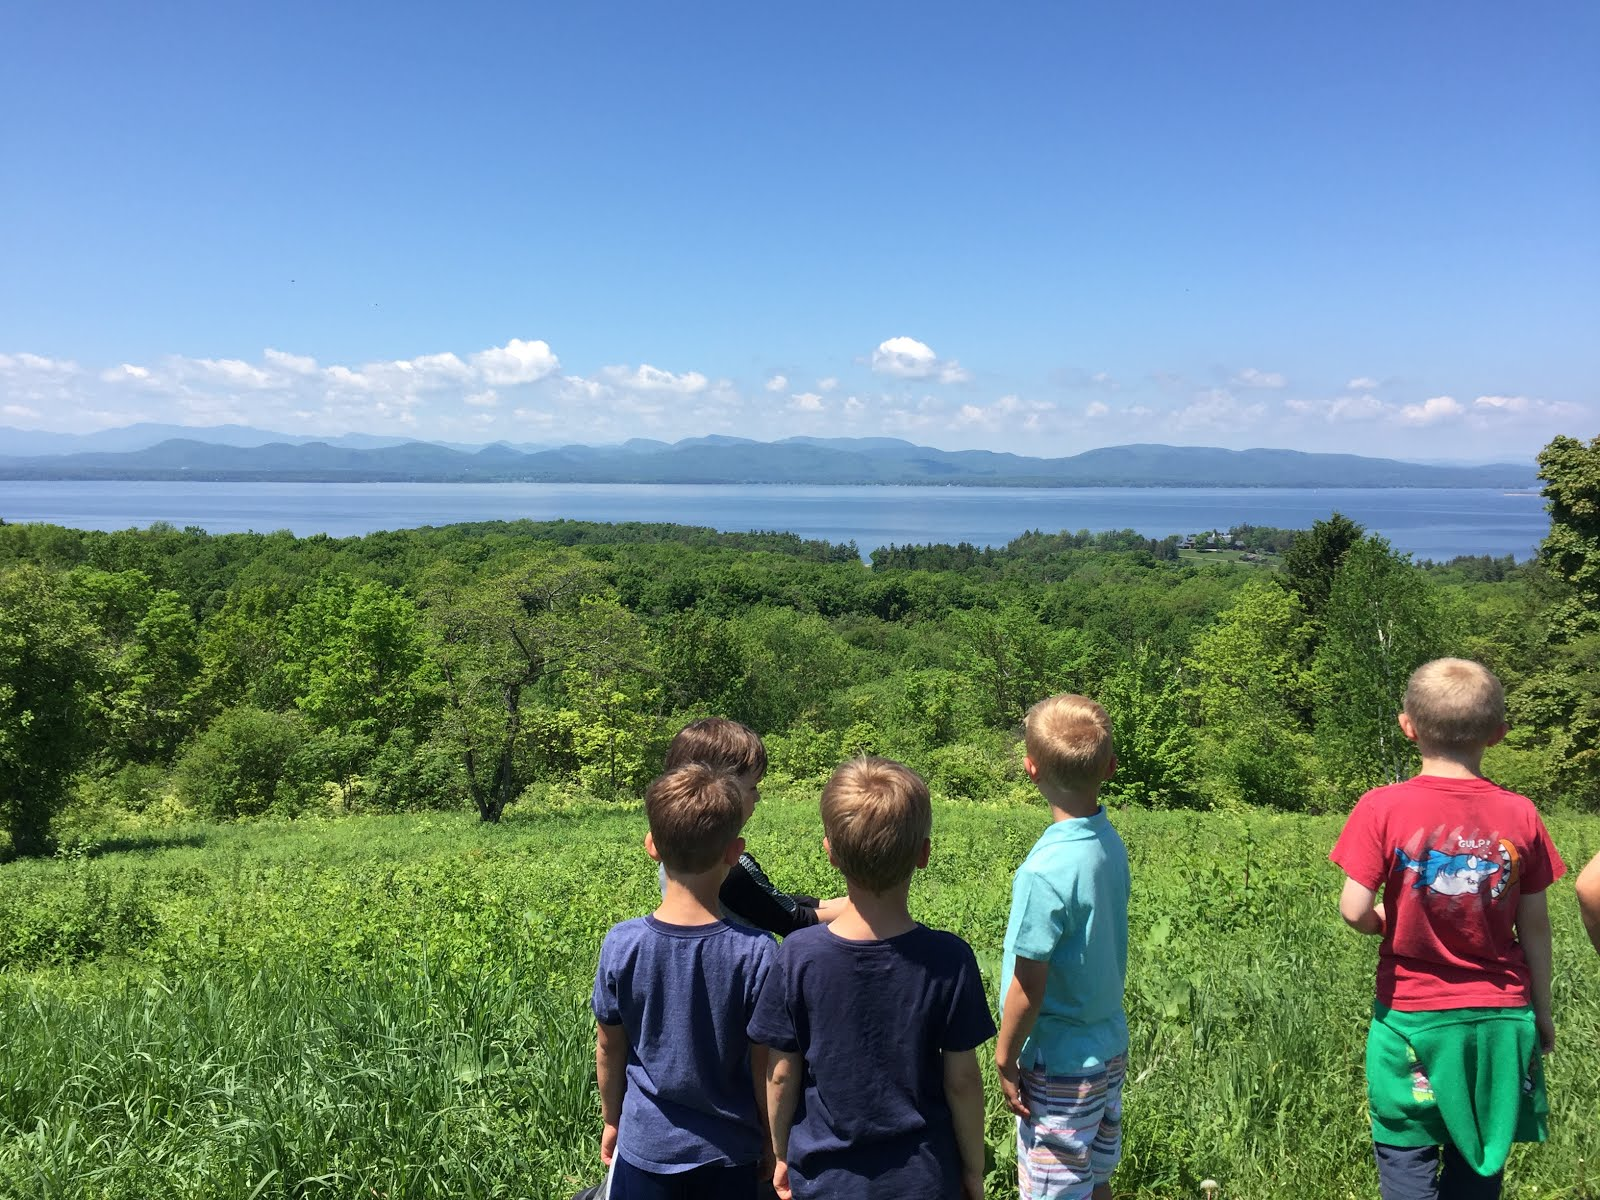 Taking in Lake Champlain